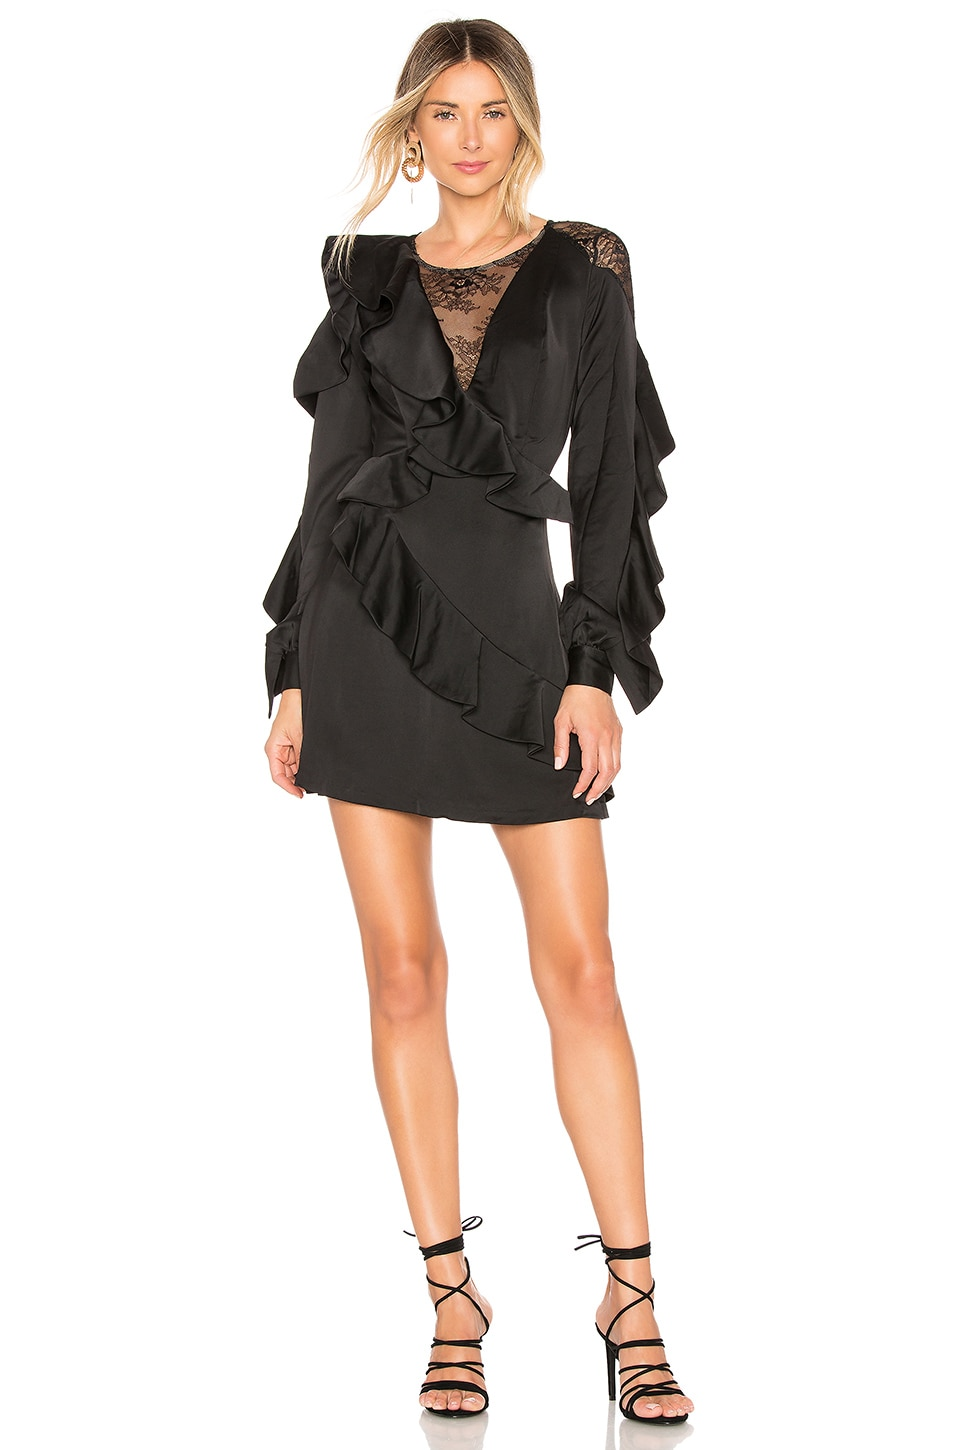 CHRISSY TEIGEN X Revolve Parker Mini Dress in Black